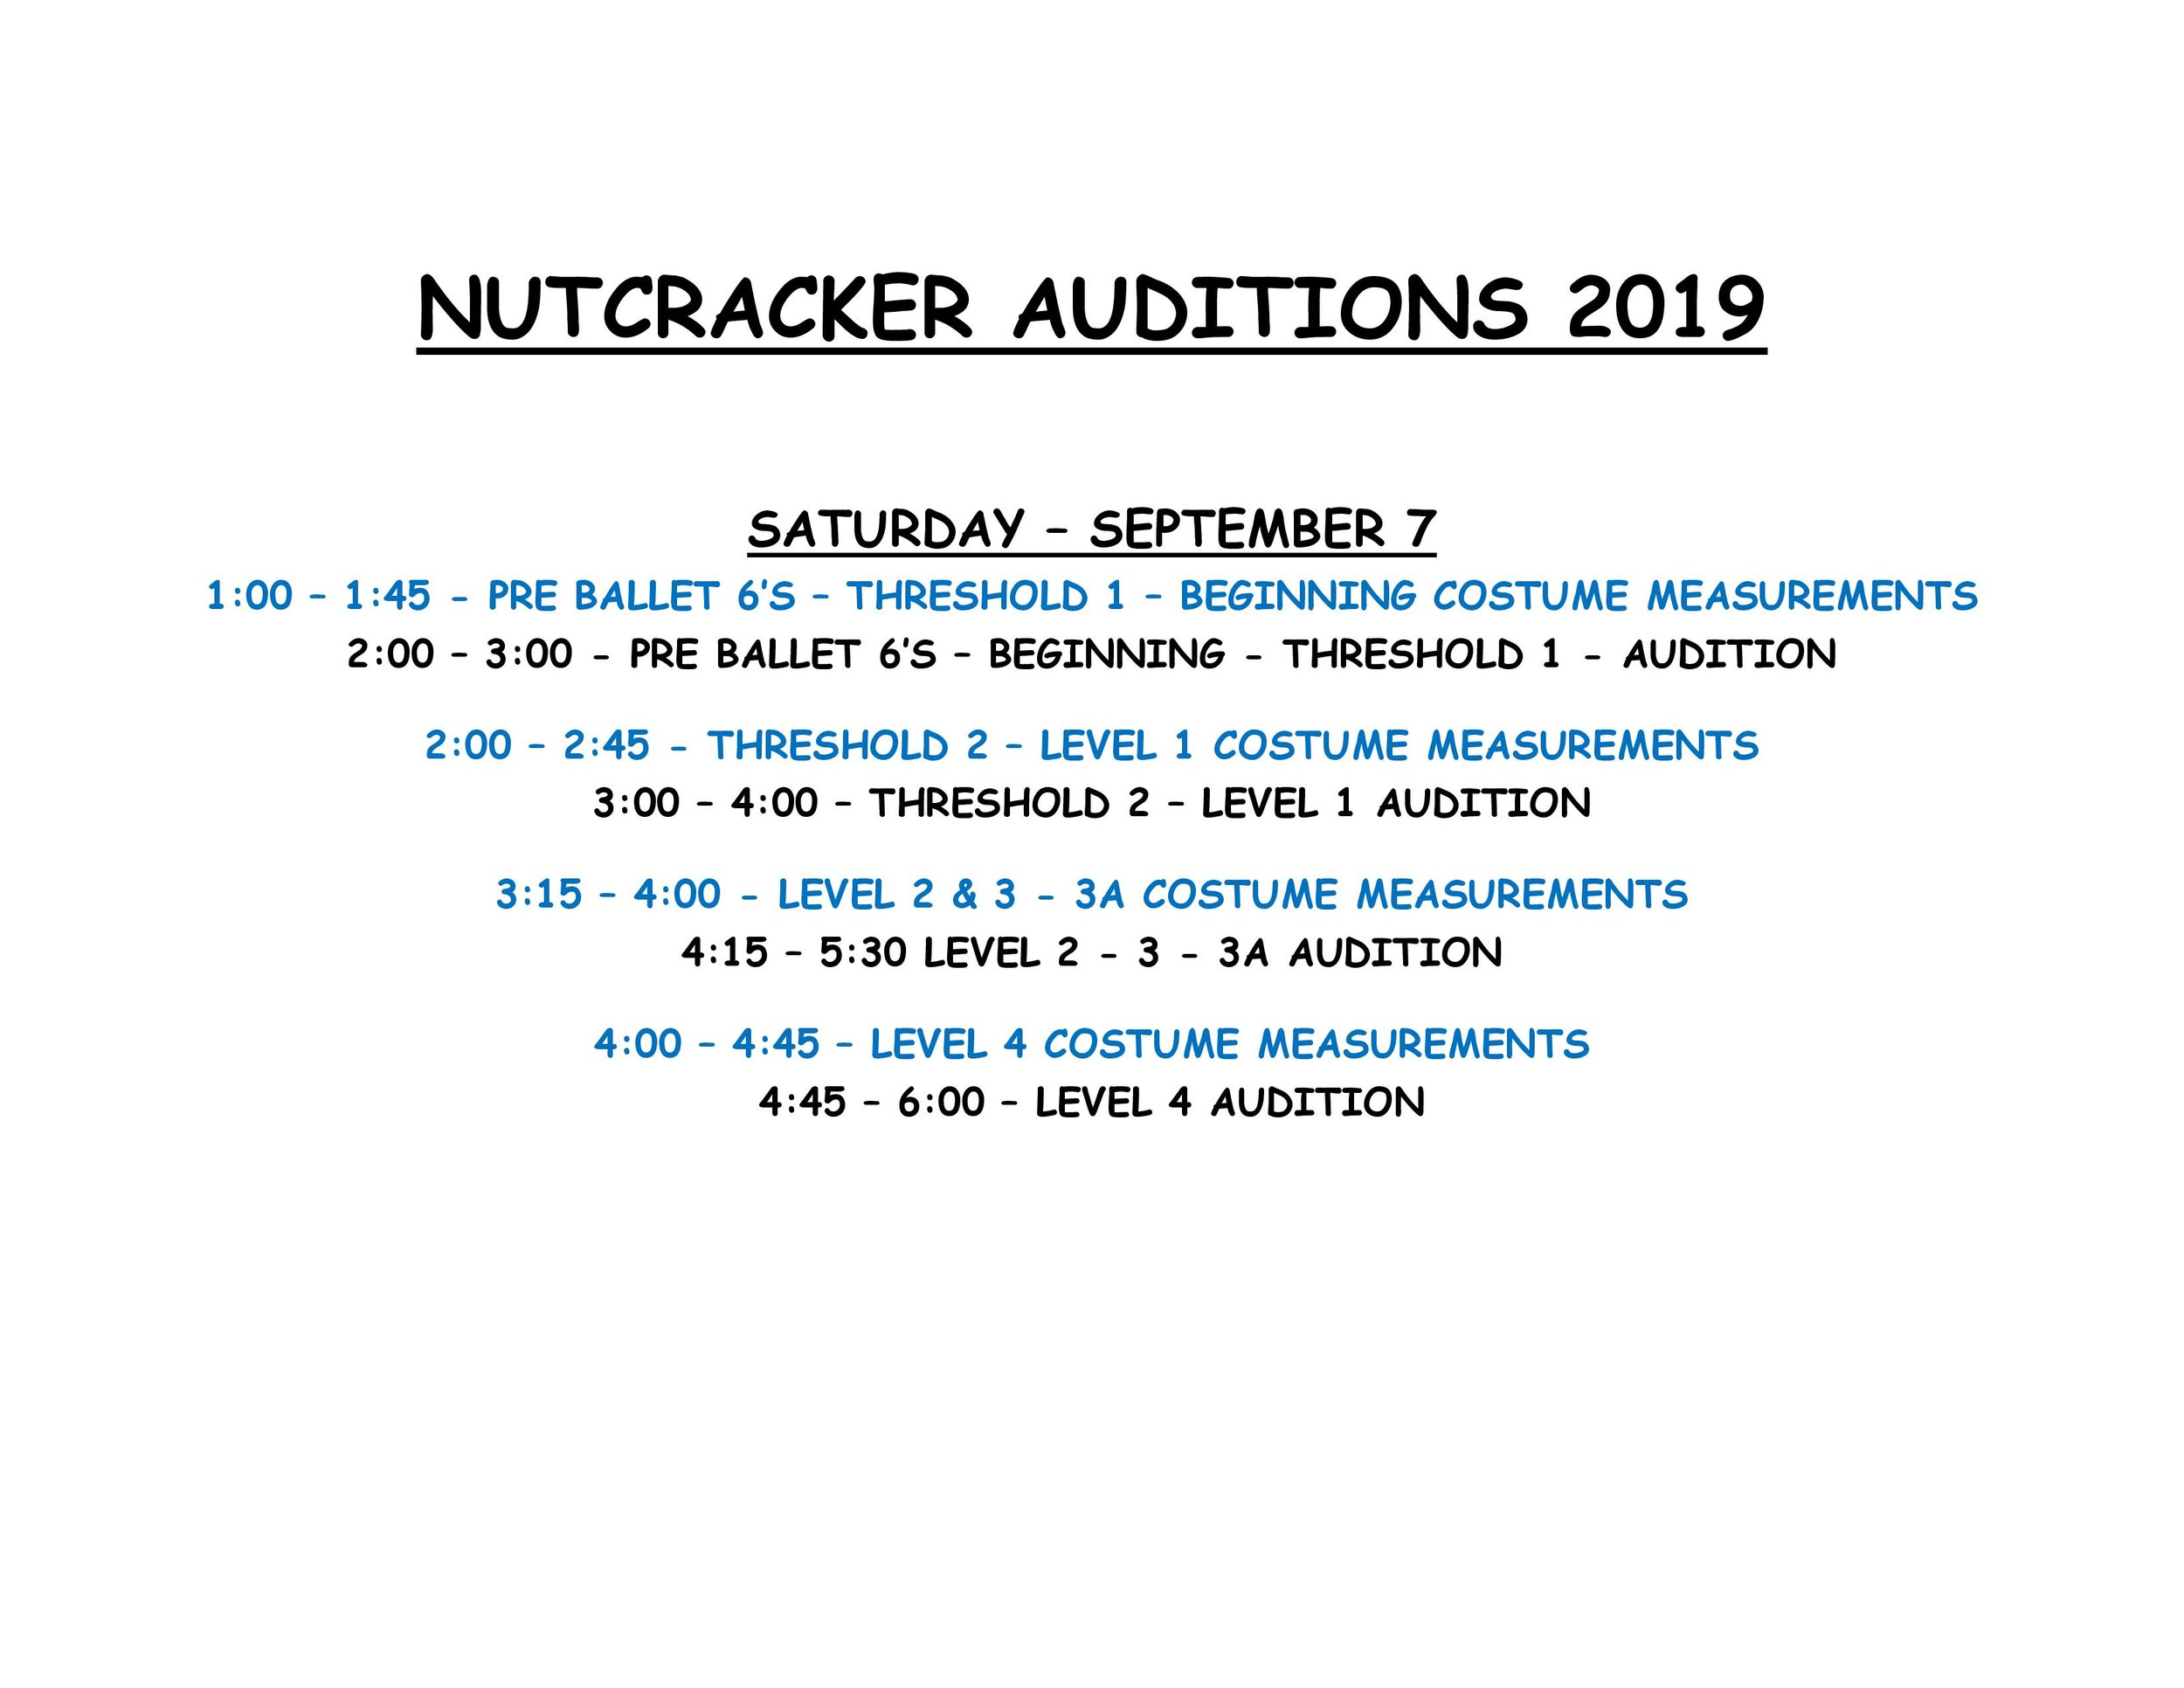 audition times 2019-page-001 (1).jpg